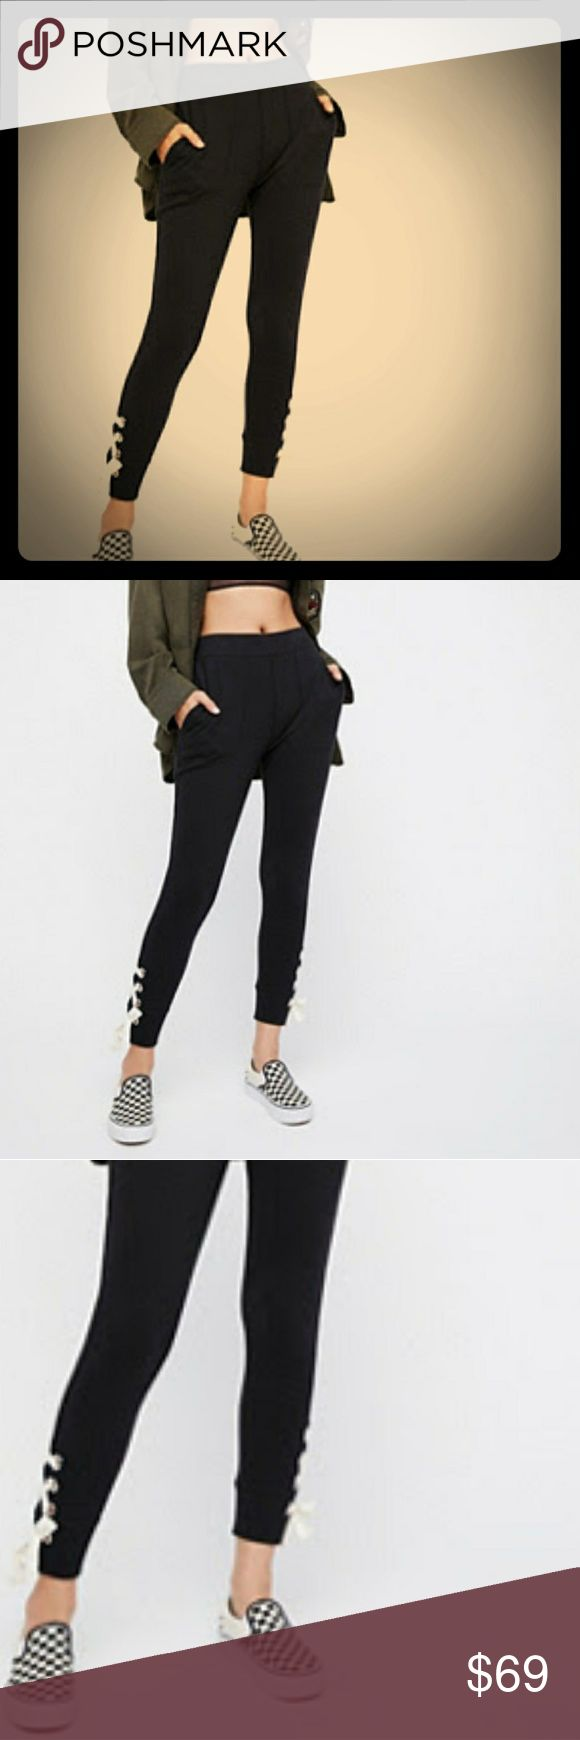 NWT FREE PEOPLE lace up slim fit jogger sweatpants New with tags size small. Pockets. Slim tapered leg. White lacing detail at ankles. Relaxed ruse. The perfect  lazy Sunday joggers. Free People Pants